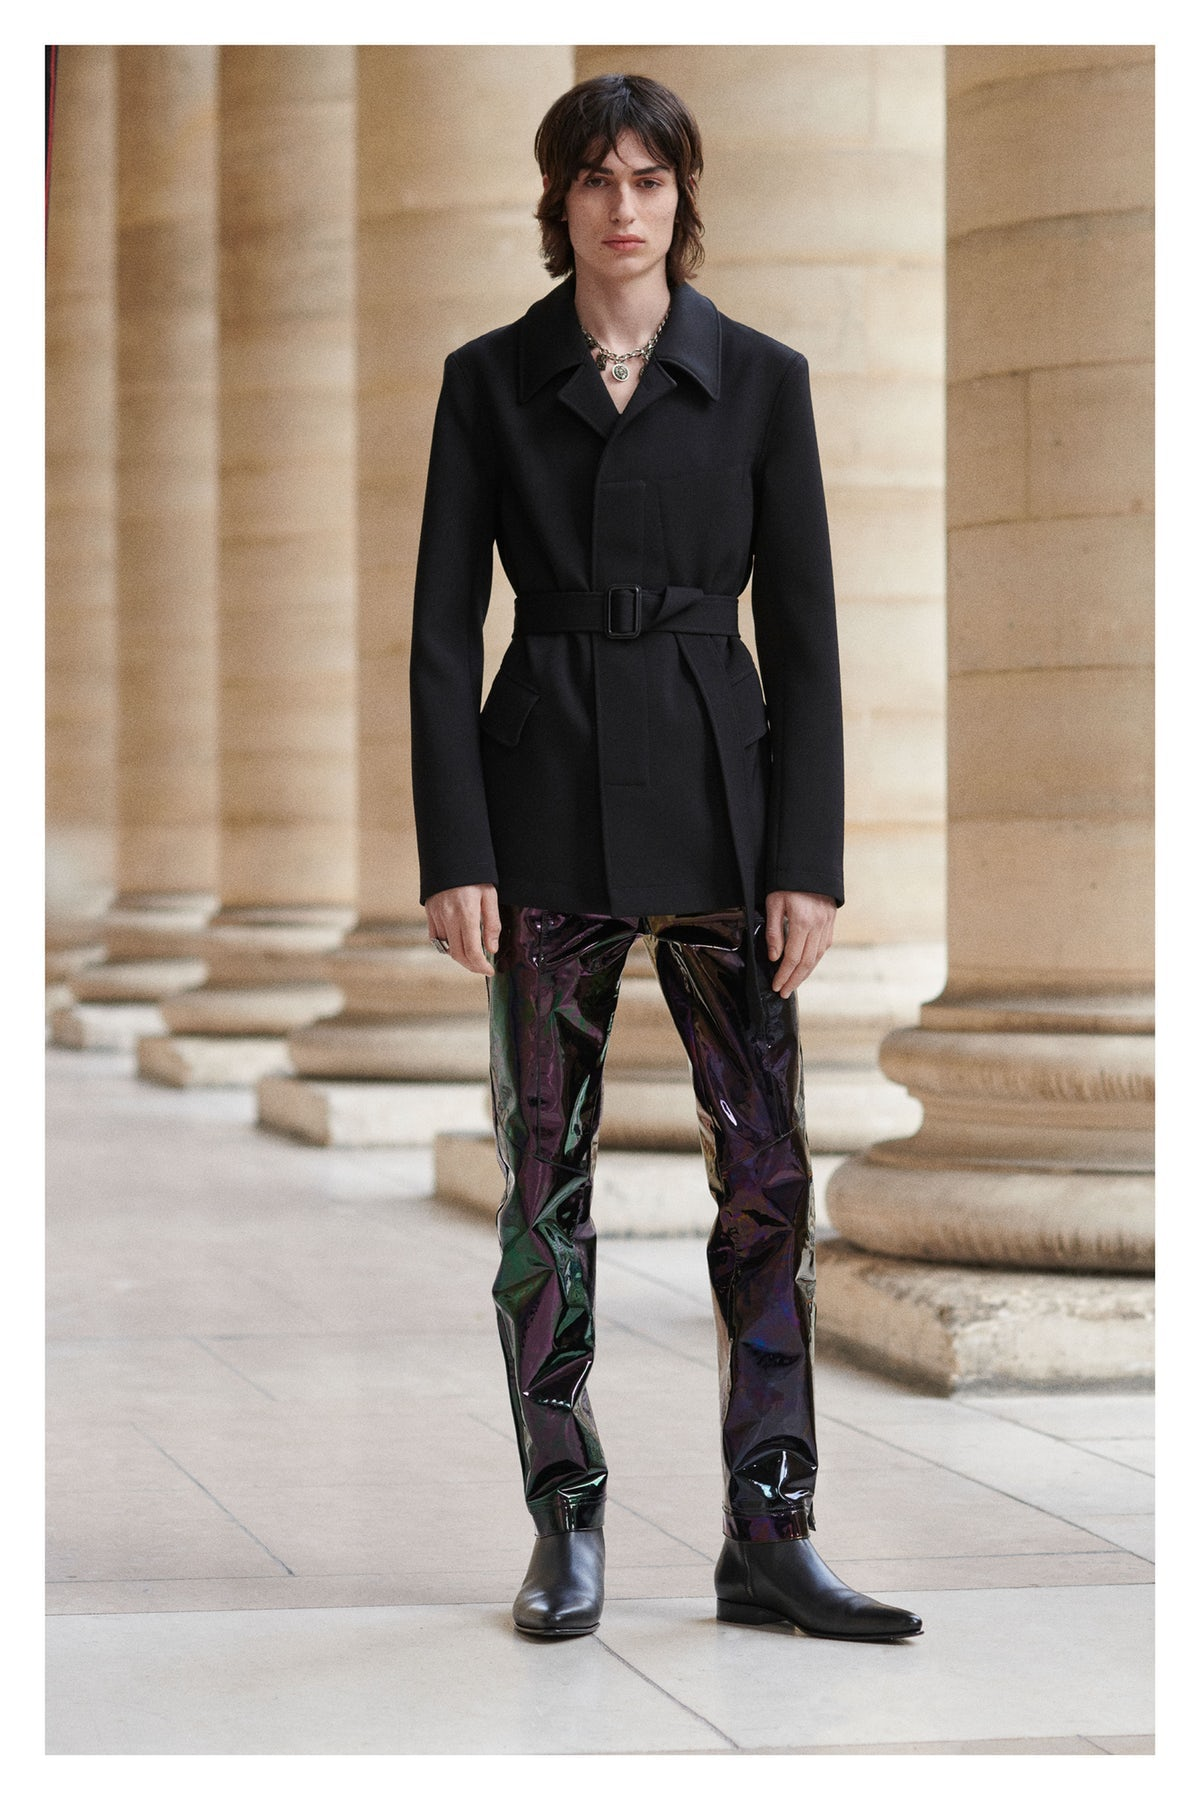 Menswear Gets a Platform at Givenchy